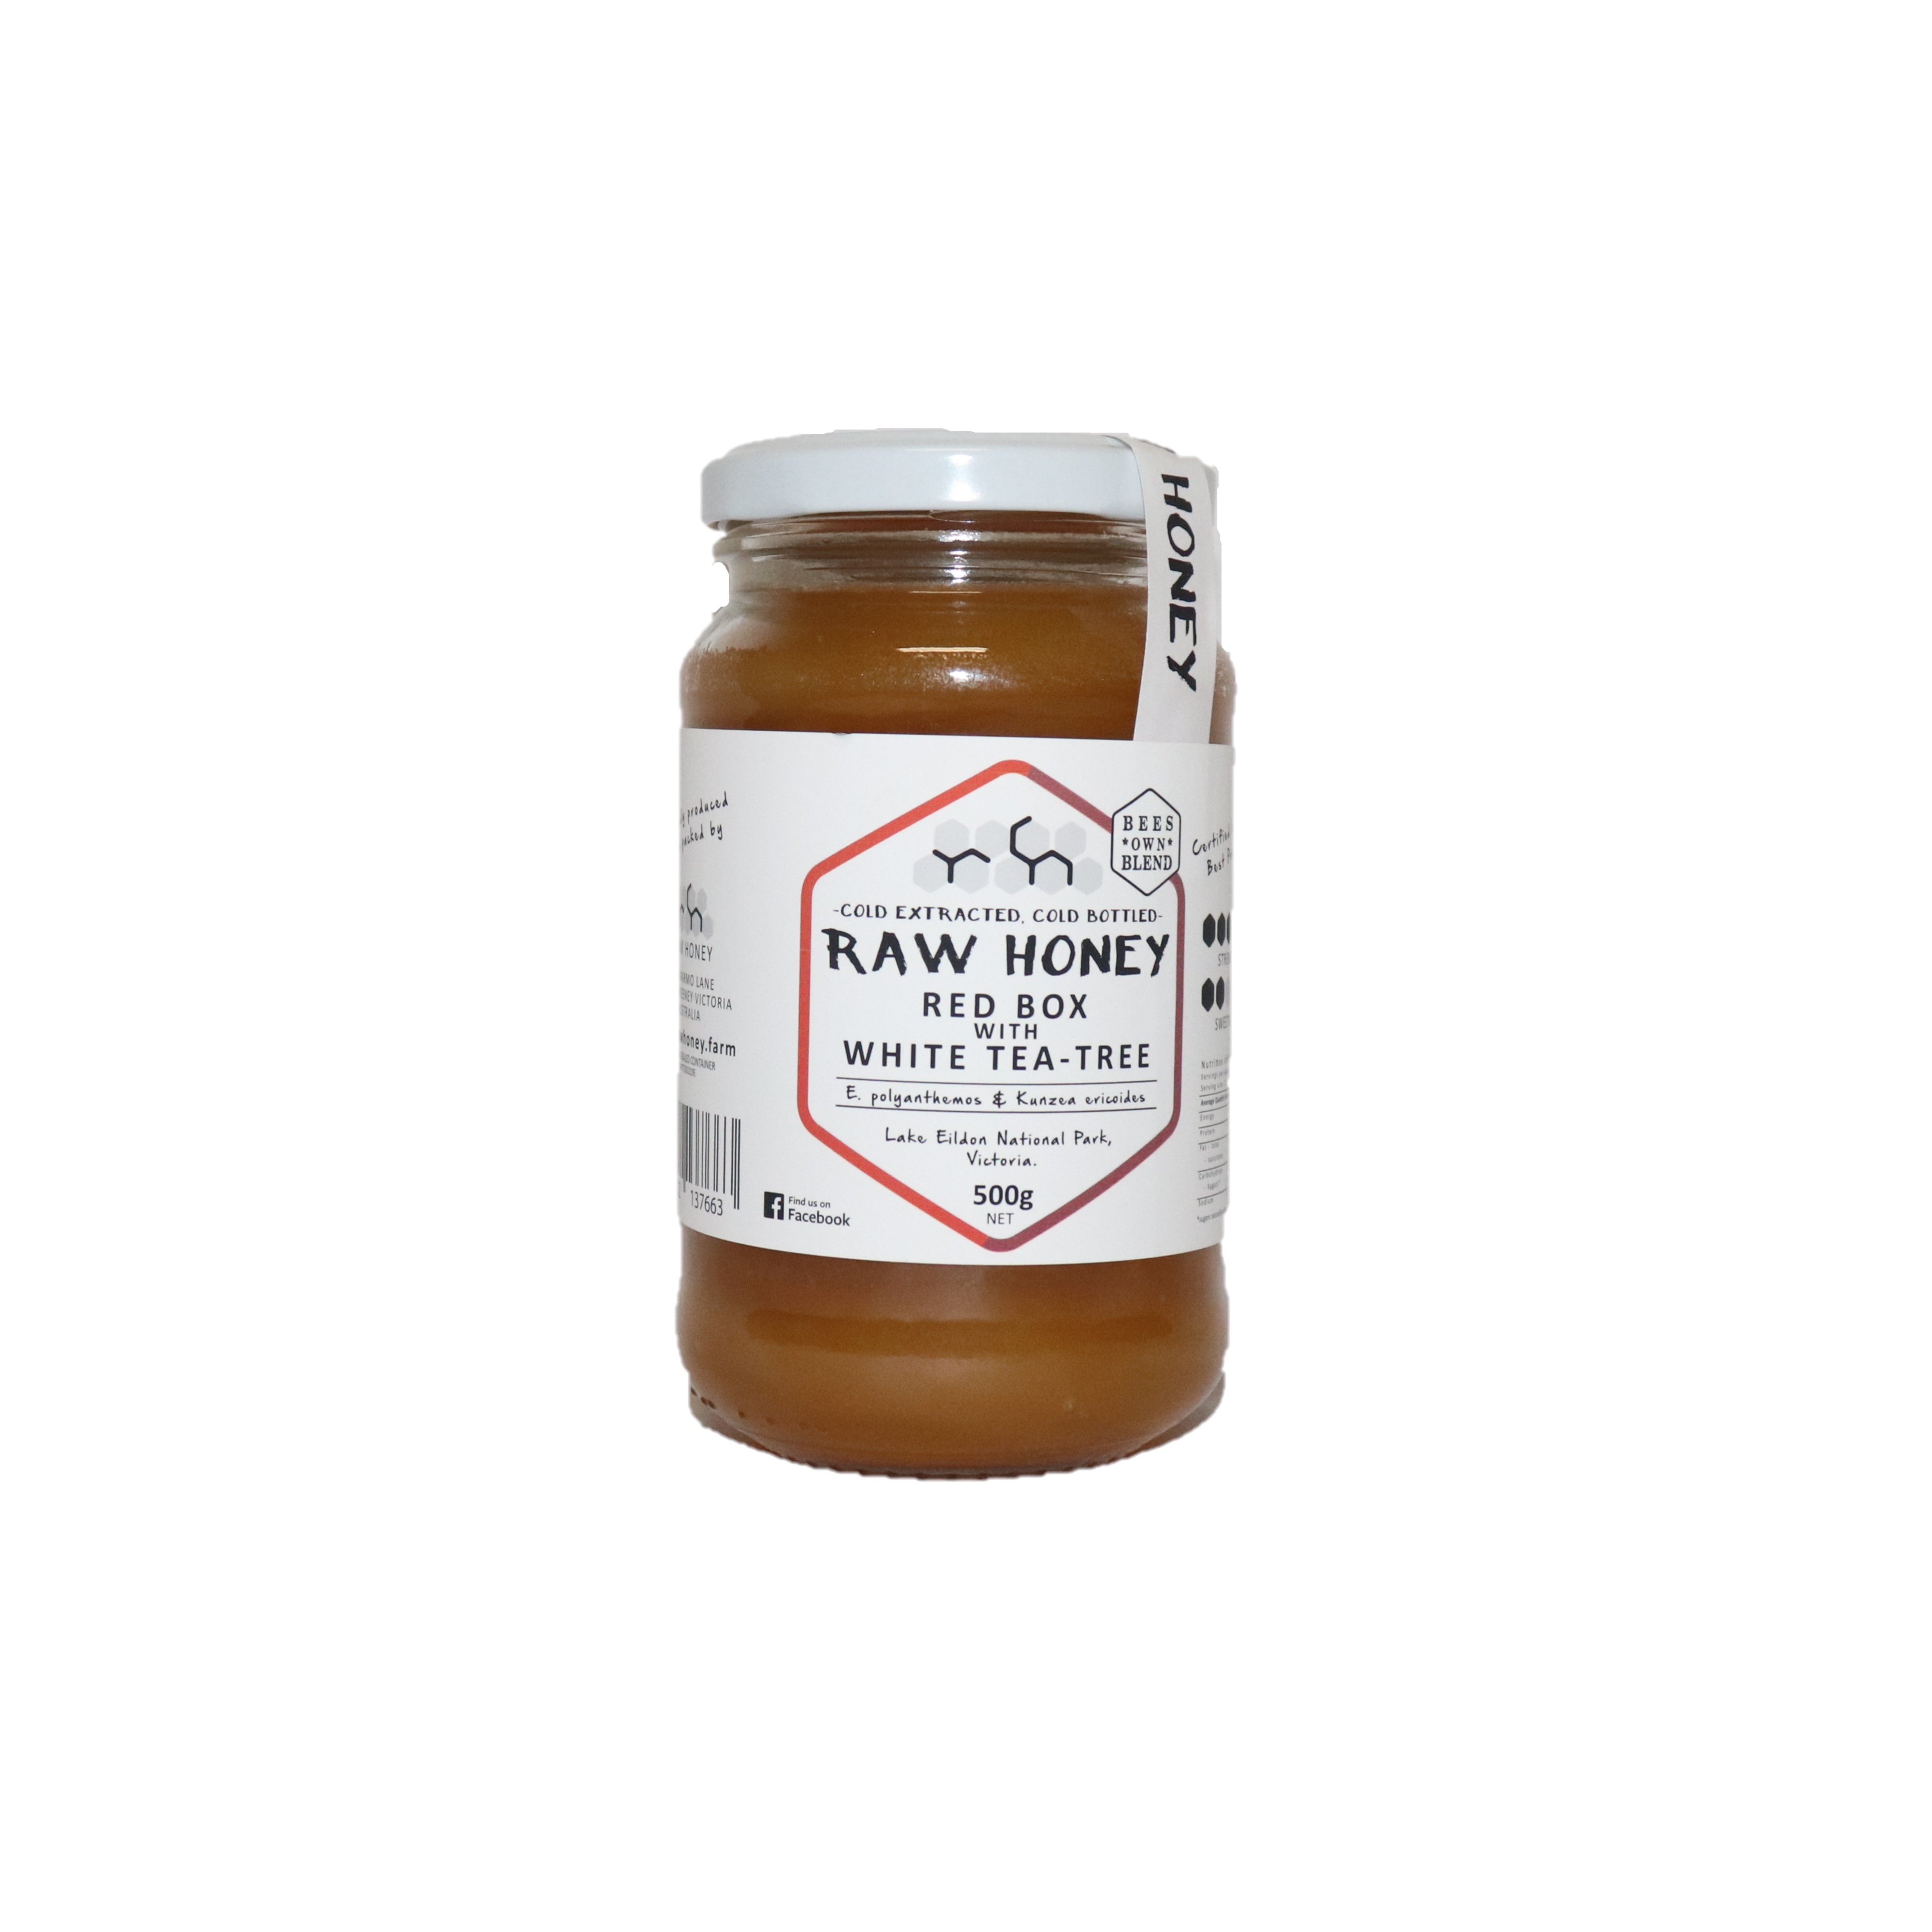 Raw Honey – Red Box with White Tea-Tree 500g